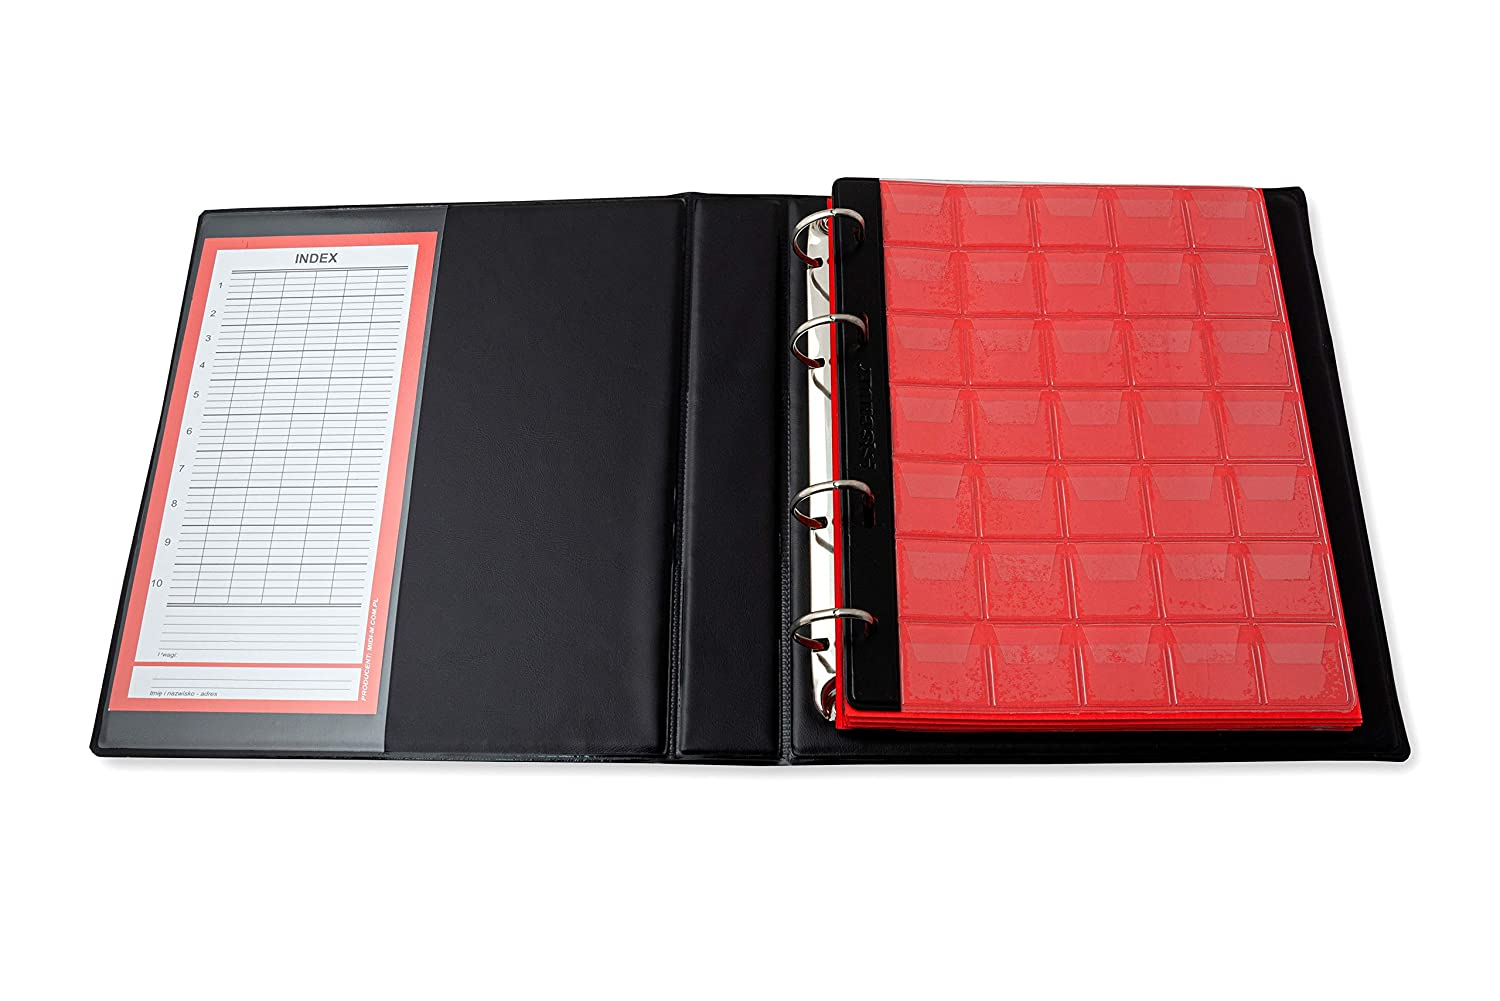 Index Schulz Coin Album Coin Album with 10 Coin Covers for 350 Pieces Various Coin Sizes with Pages and Red Dividers Red